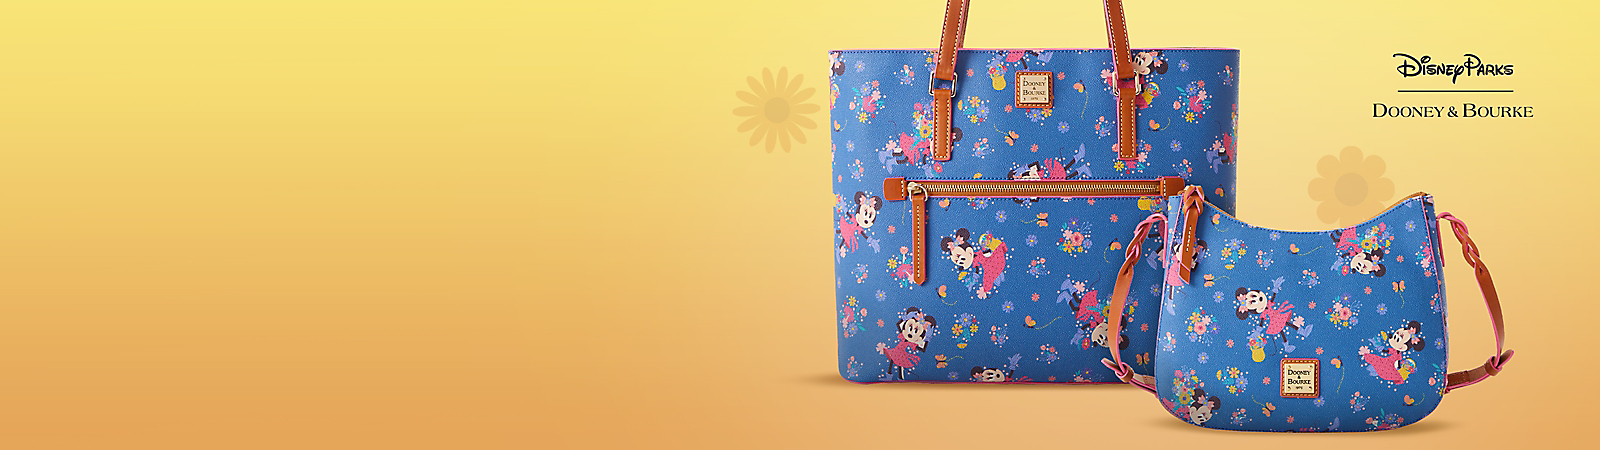 Background image of New Dooney & Bourke in Bloom